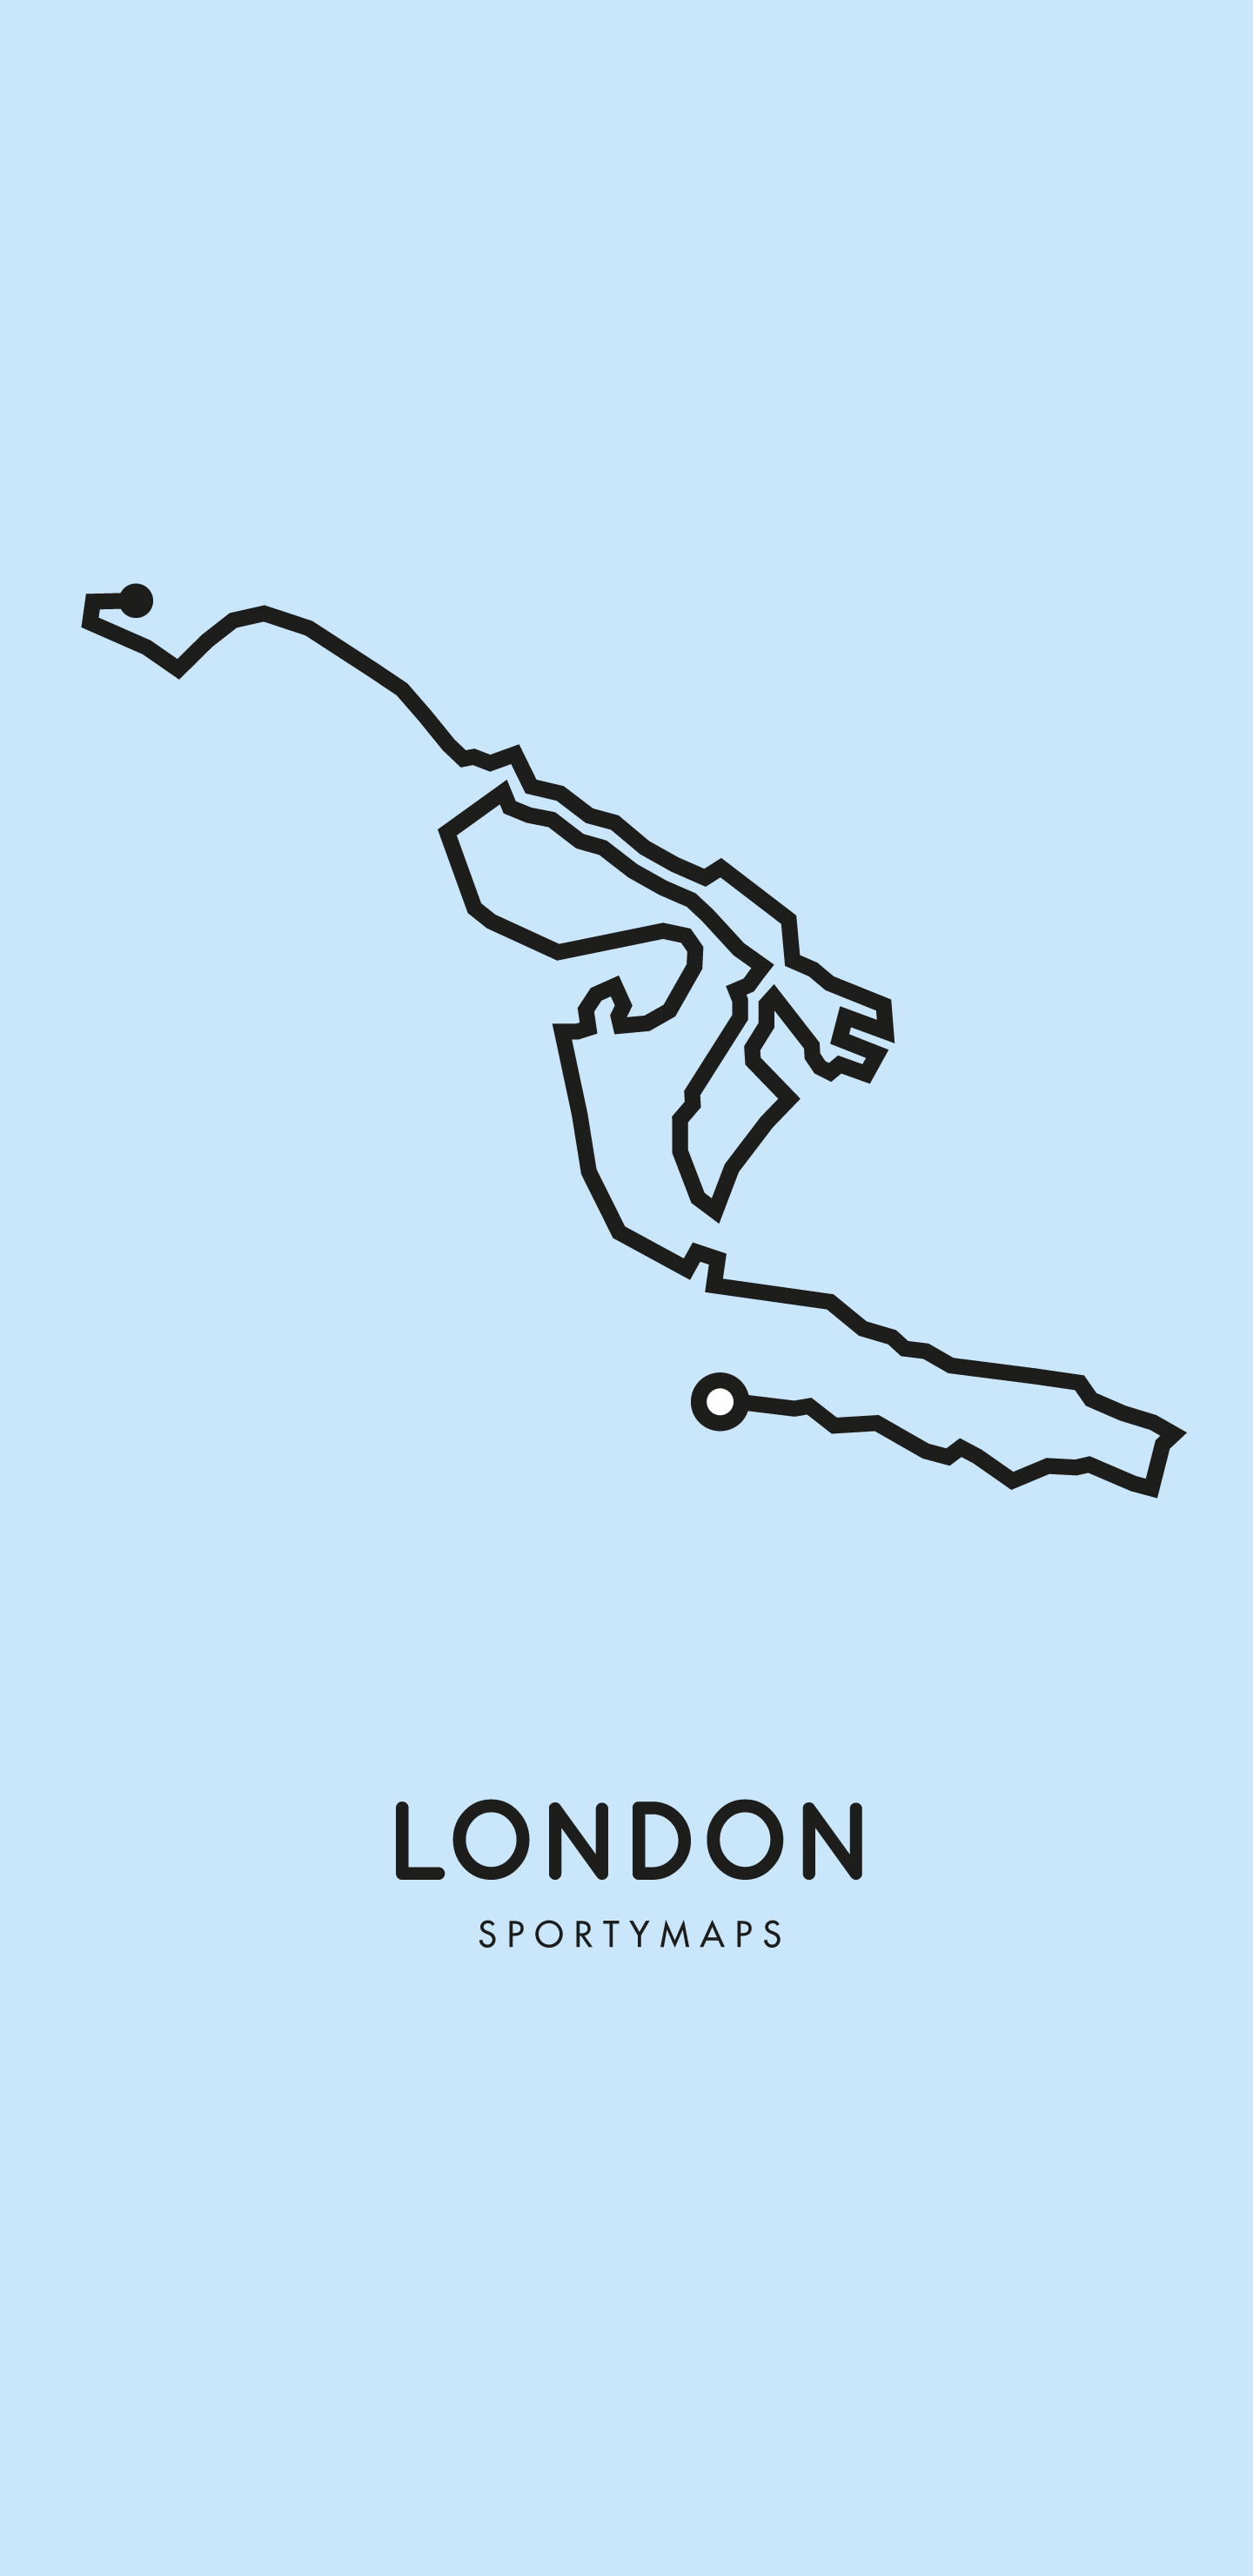 Sportymaps-London-marathon-blue